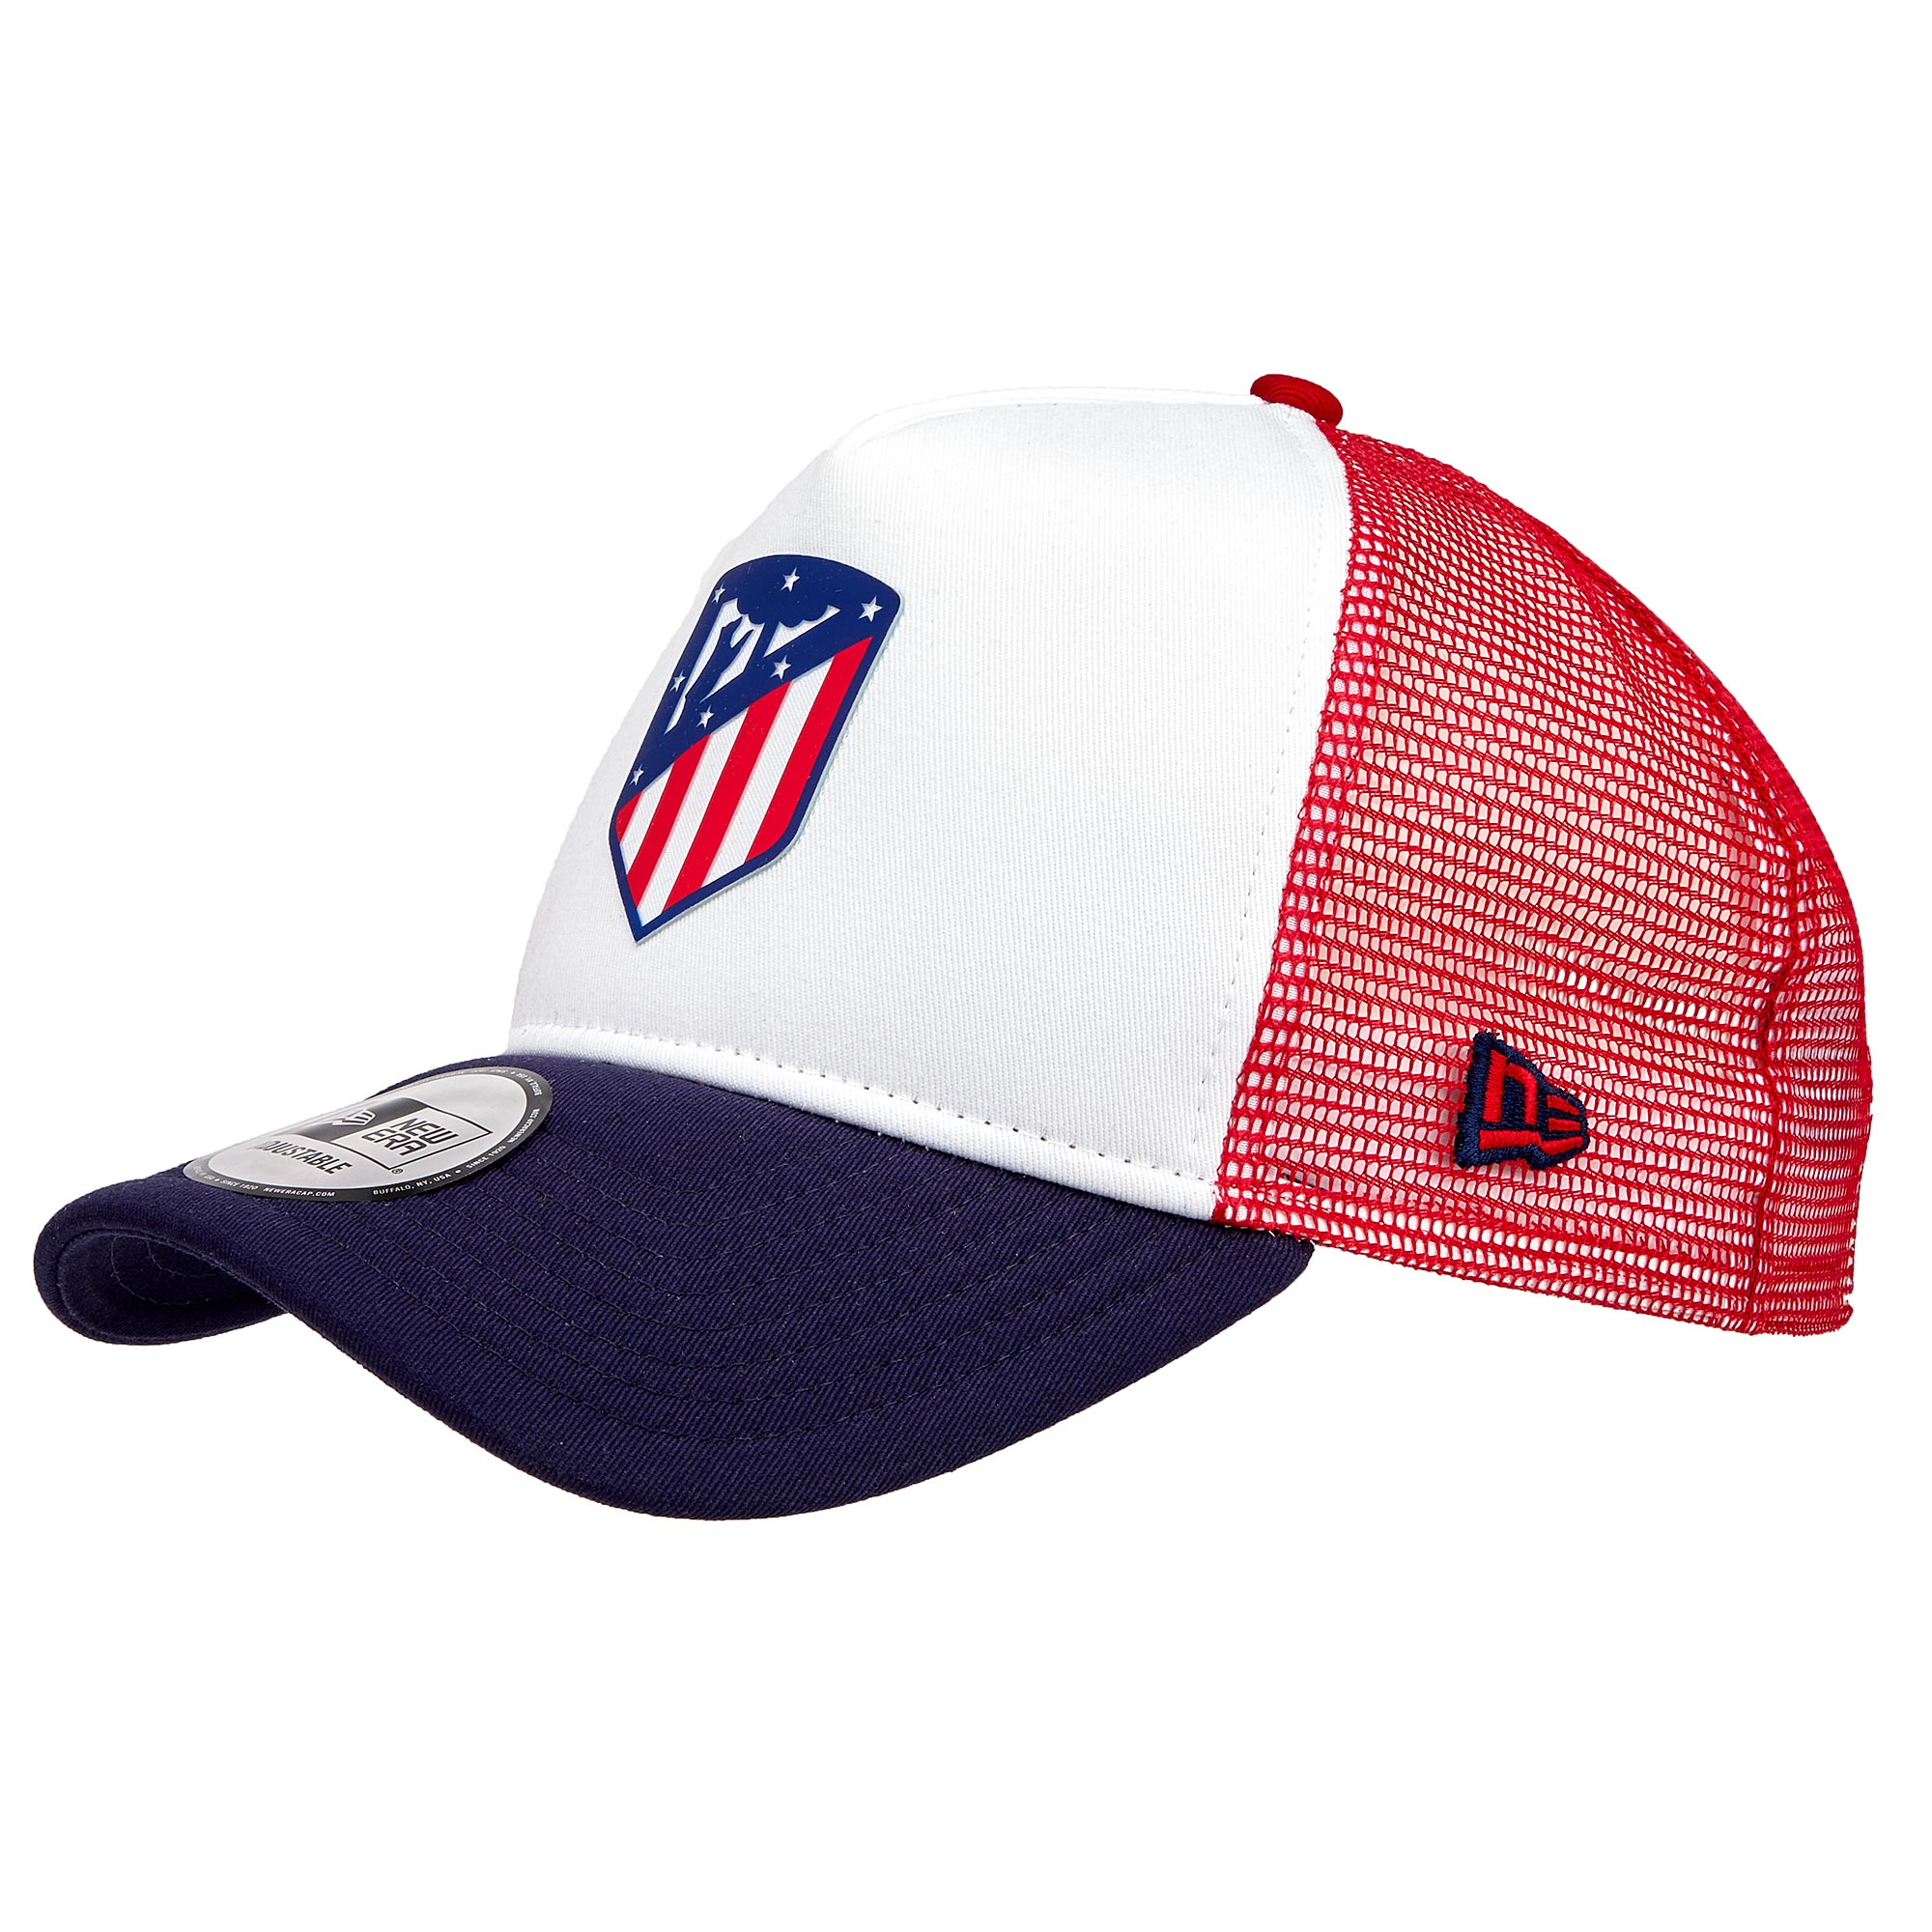 Gorra trucker del Atlético de Madrid de New Era en blanco